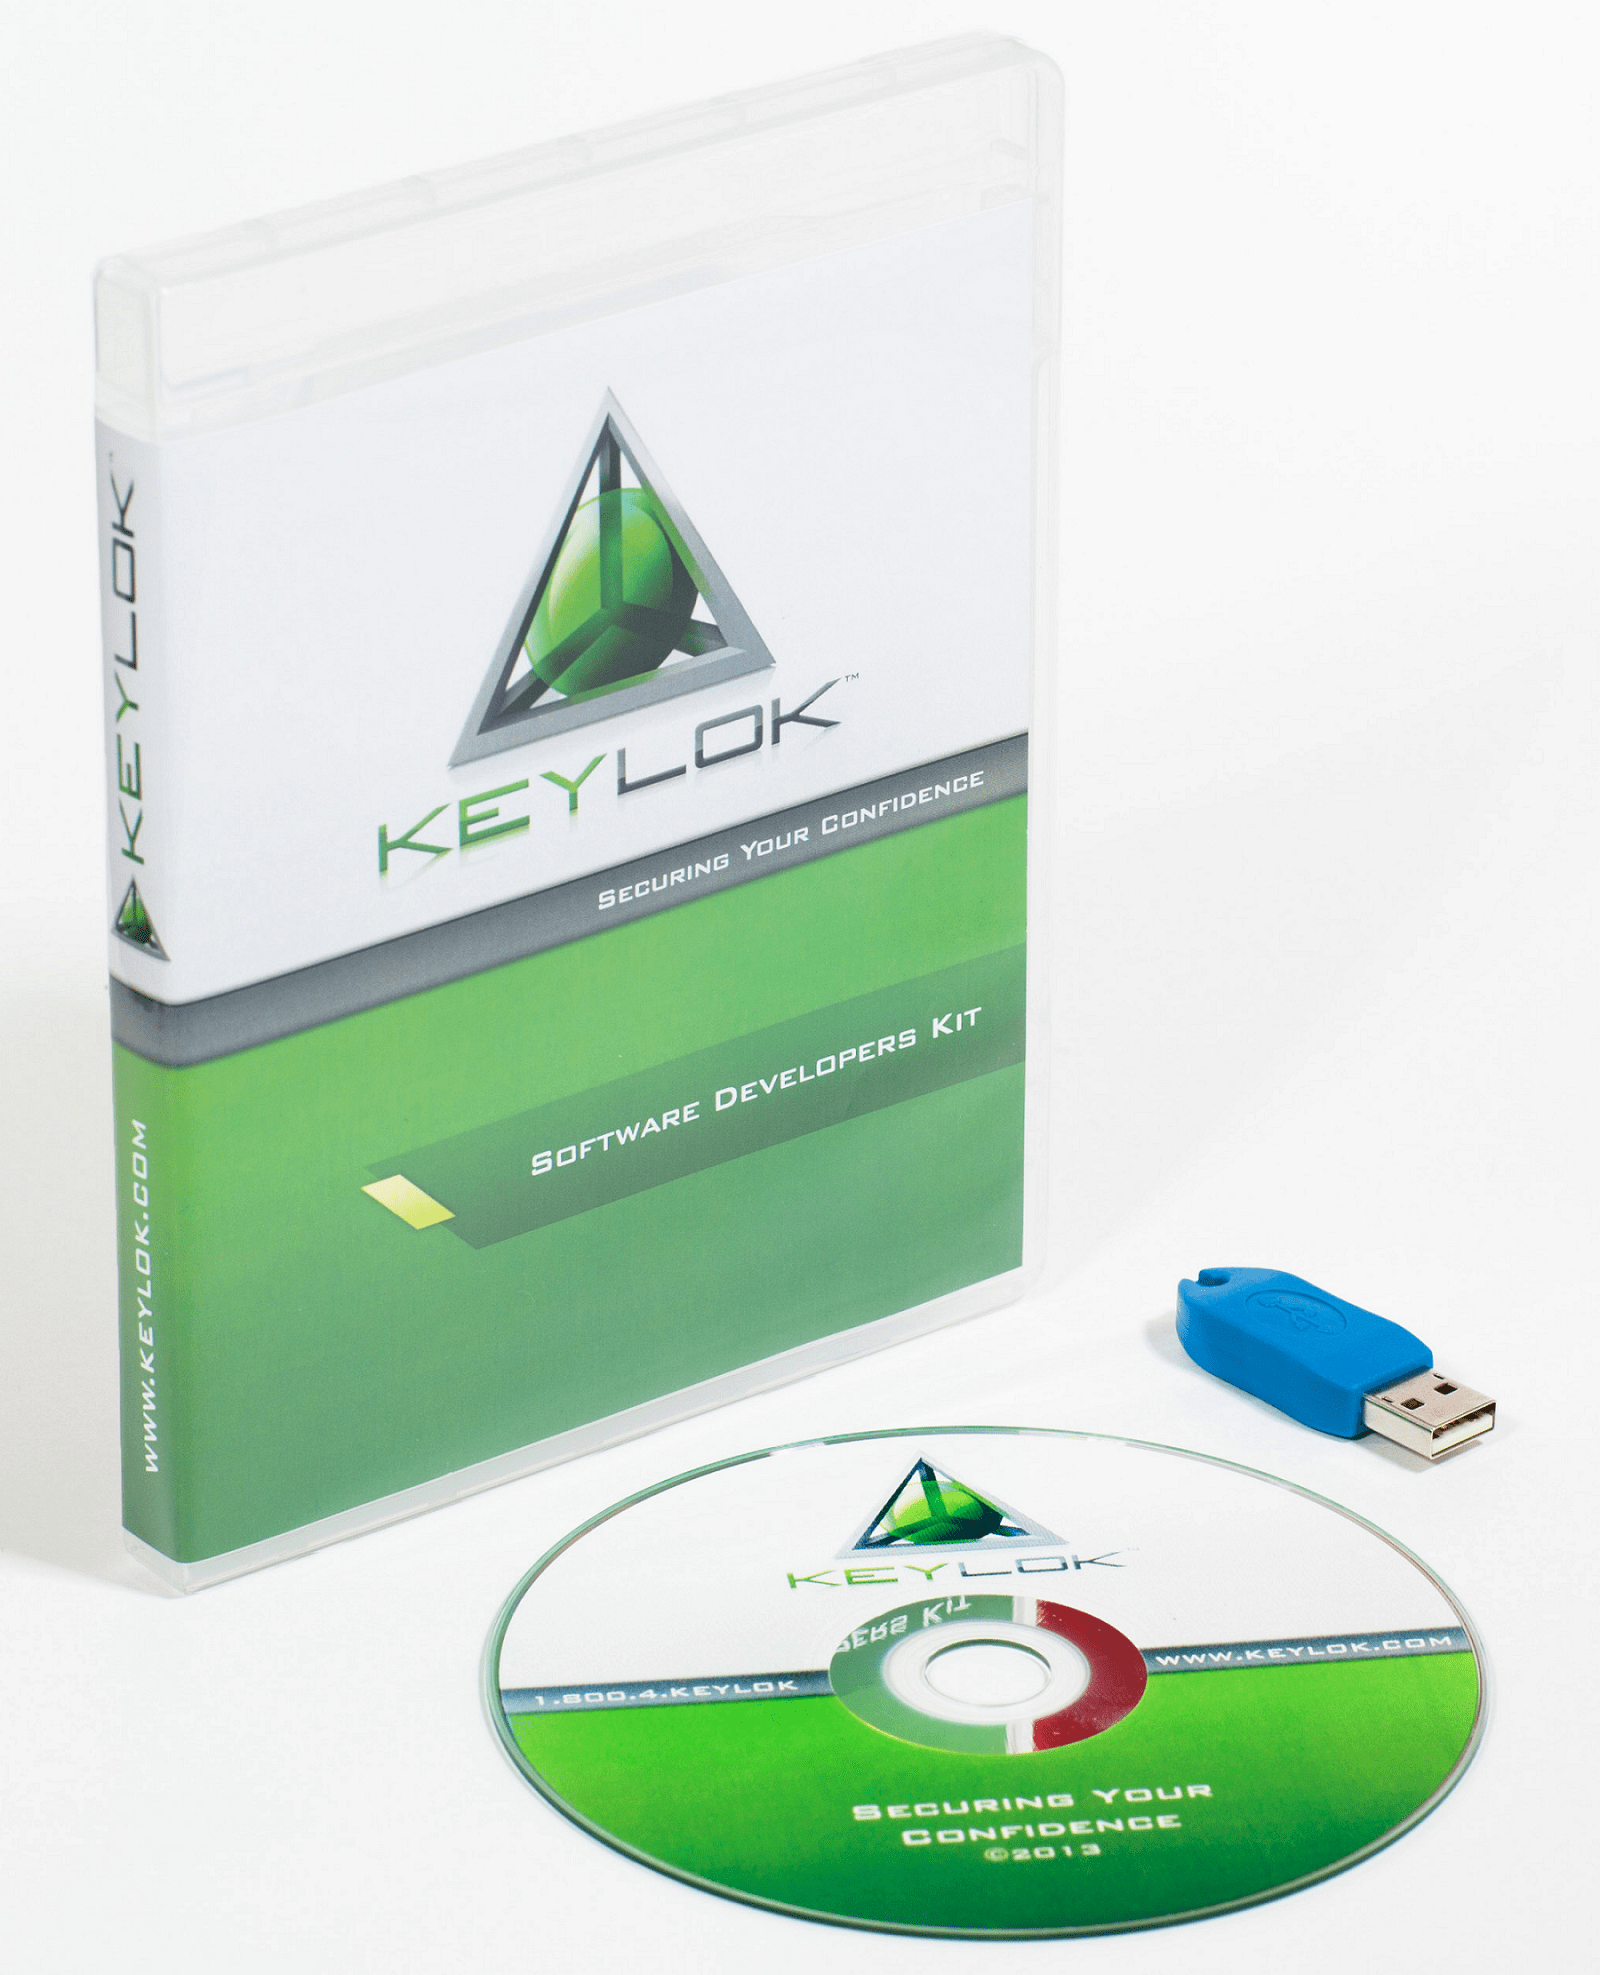 software developers are leaving competitors for keylok s software keylok is experiencing a steady influx of software and systems developers who are switching from competitors citing reasons of ease of implementation of